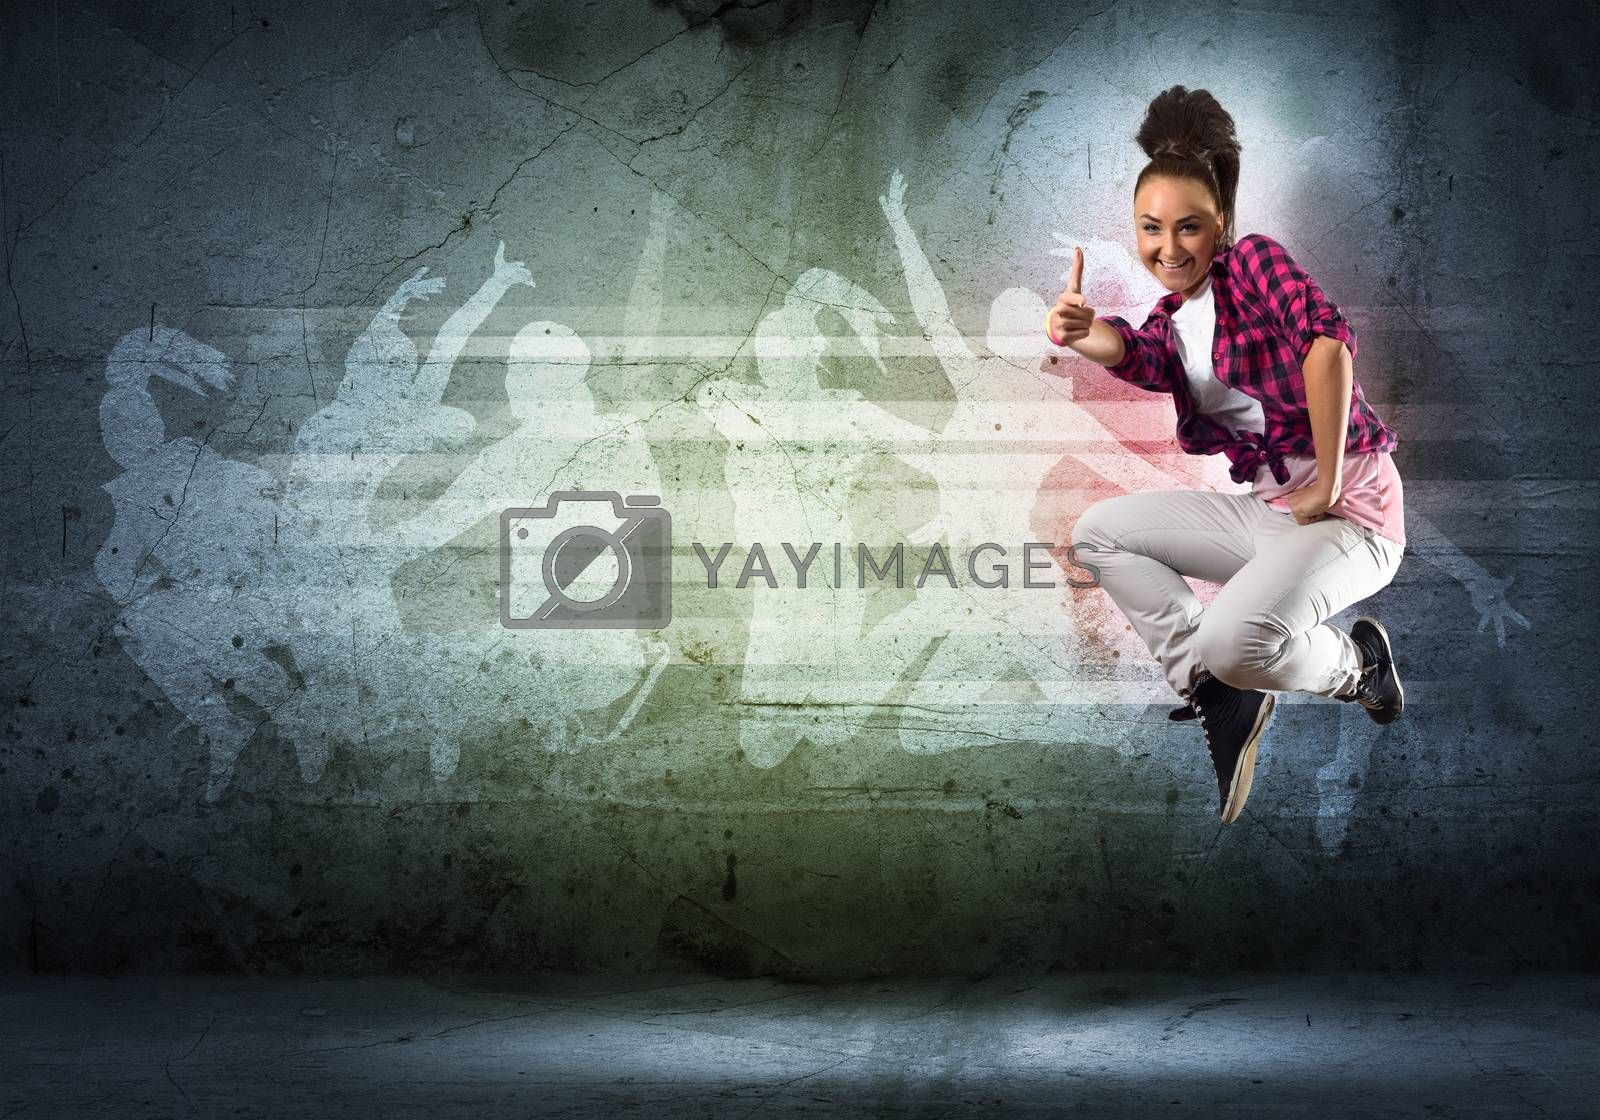 Royalty free image of dancer by adam121